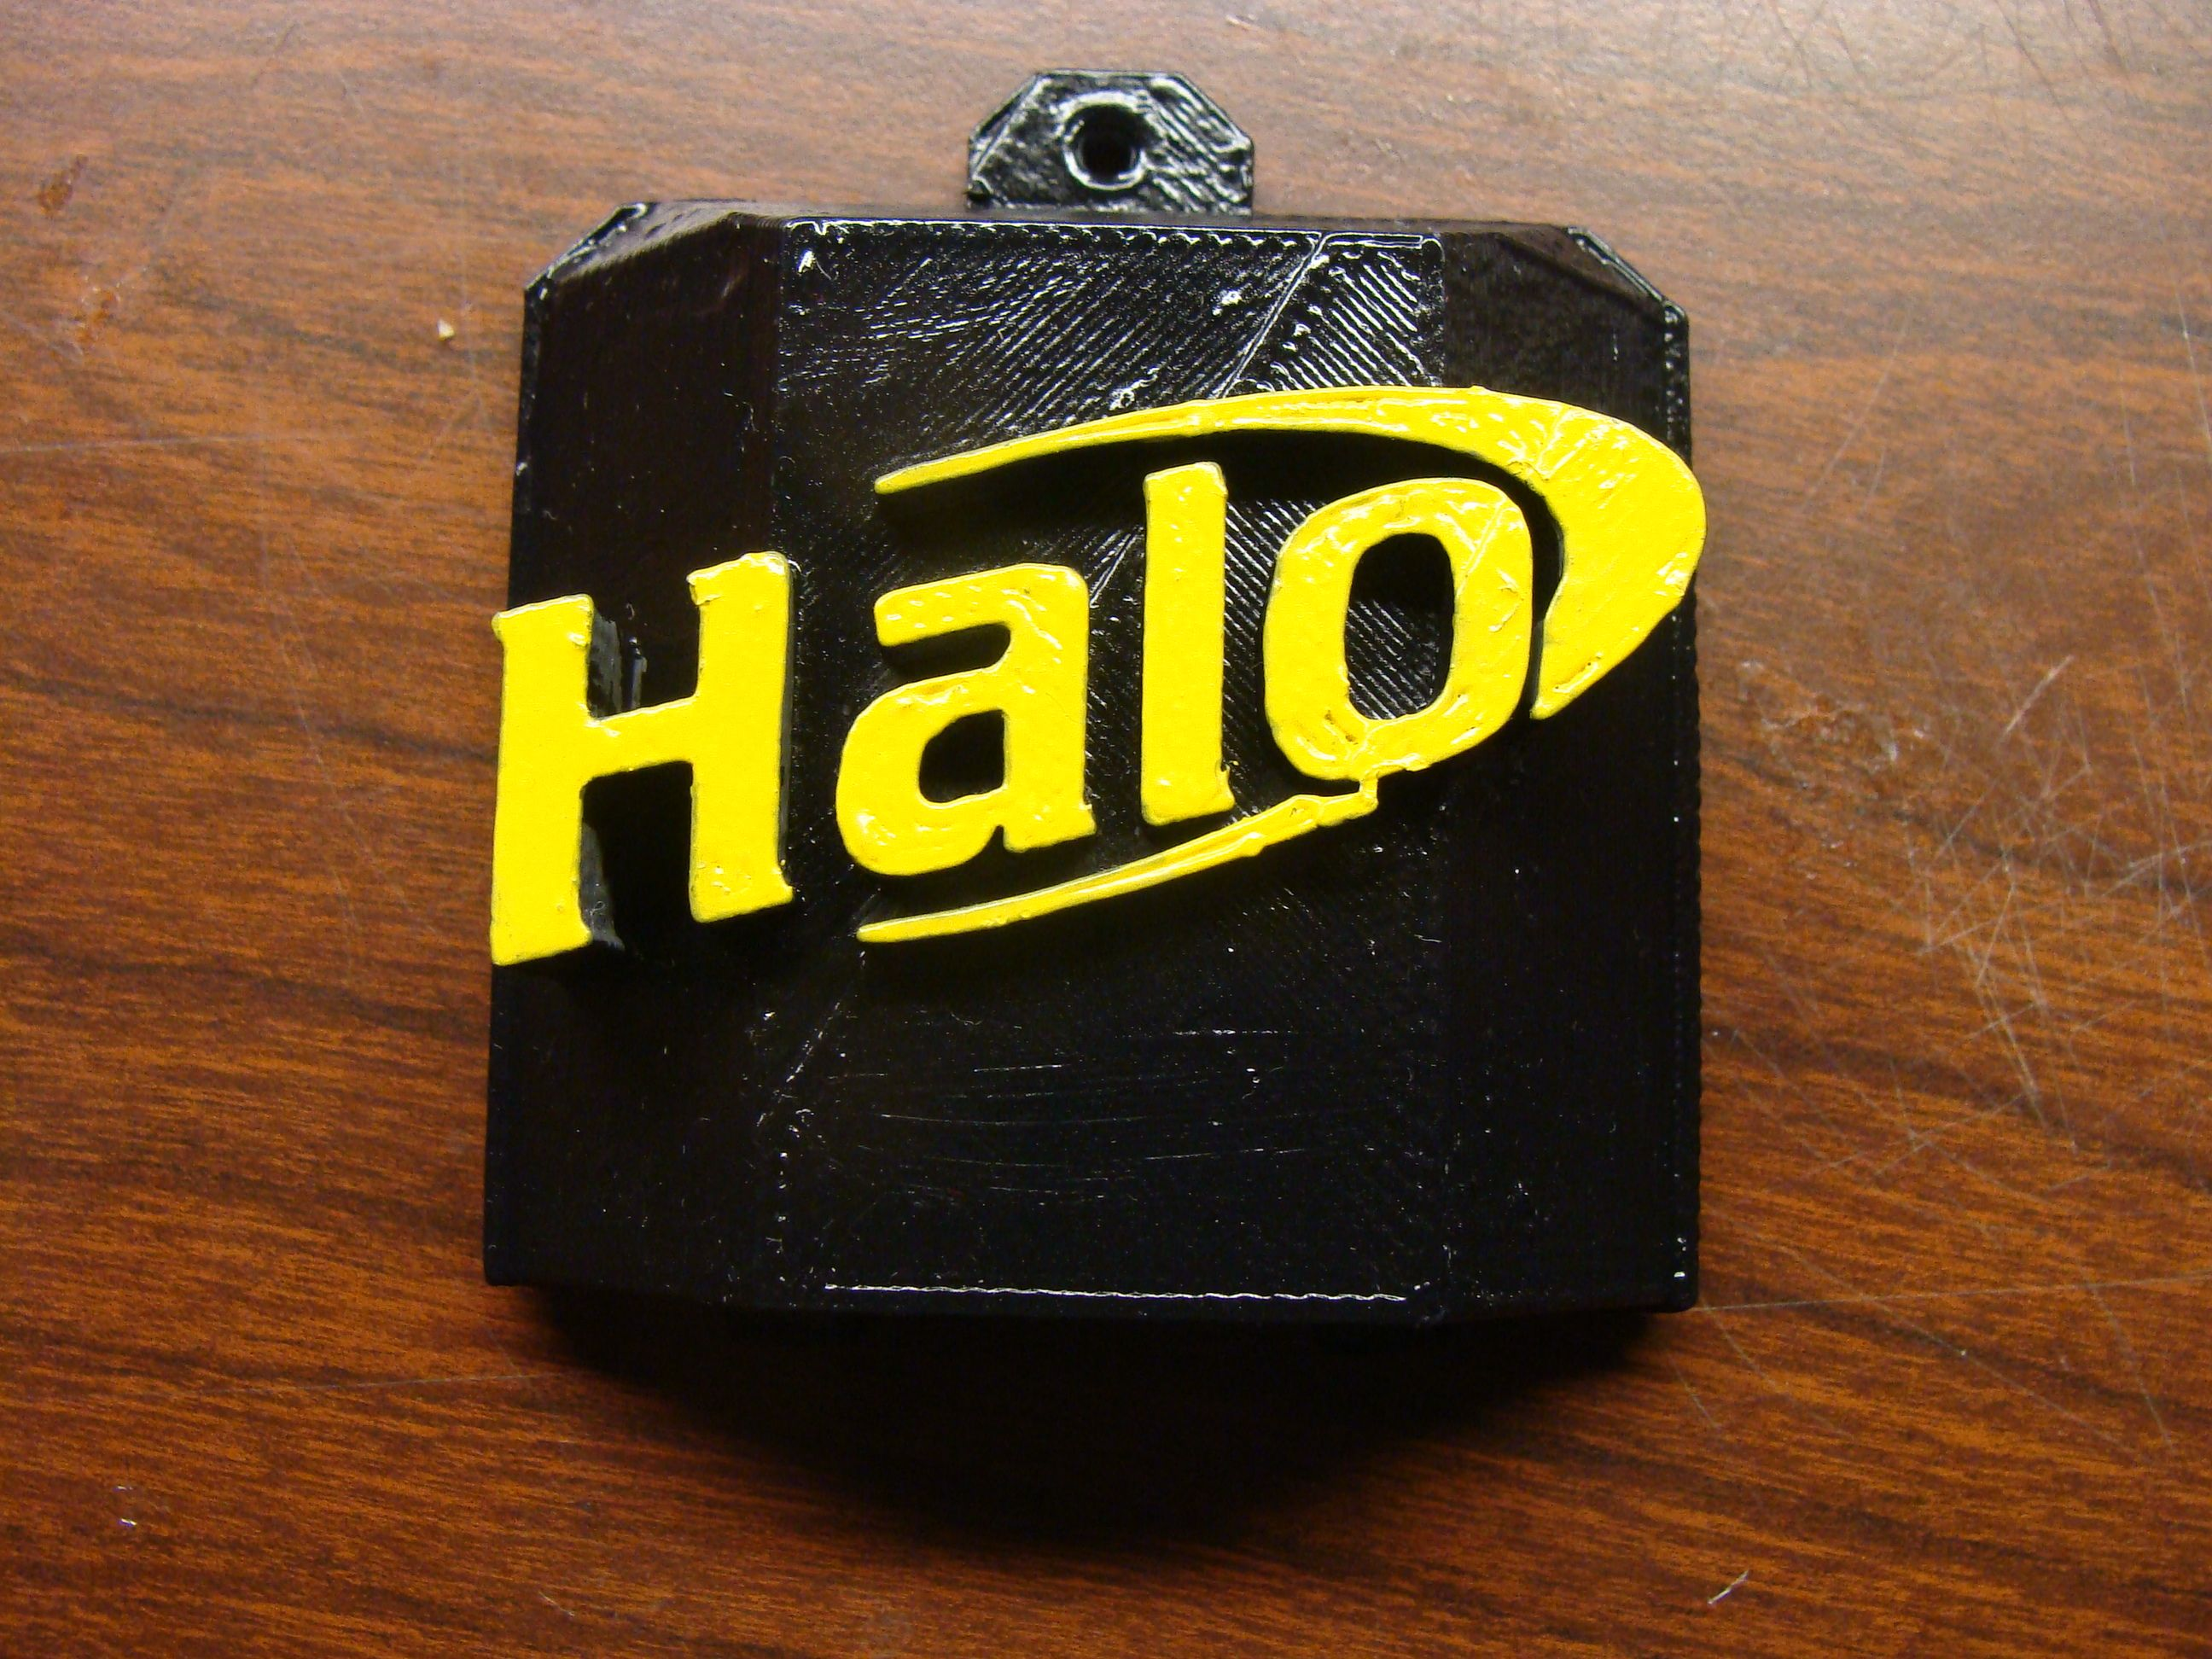 Color printing el paso tx -  El Paso Tx On Facebook 3d Printed Nerf Halo Battery Cover Designed Stl And Prototype Printed Design By Nathan Allan 2015